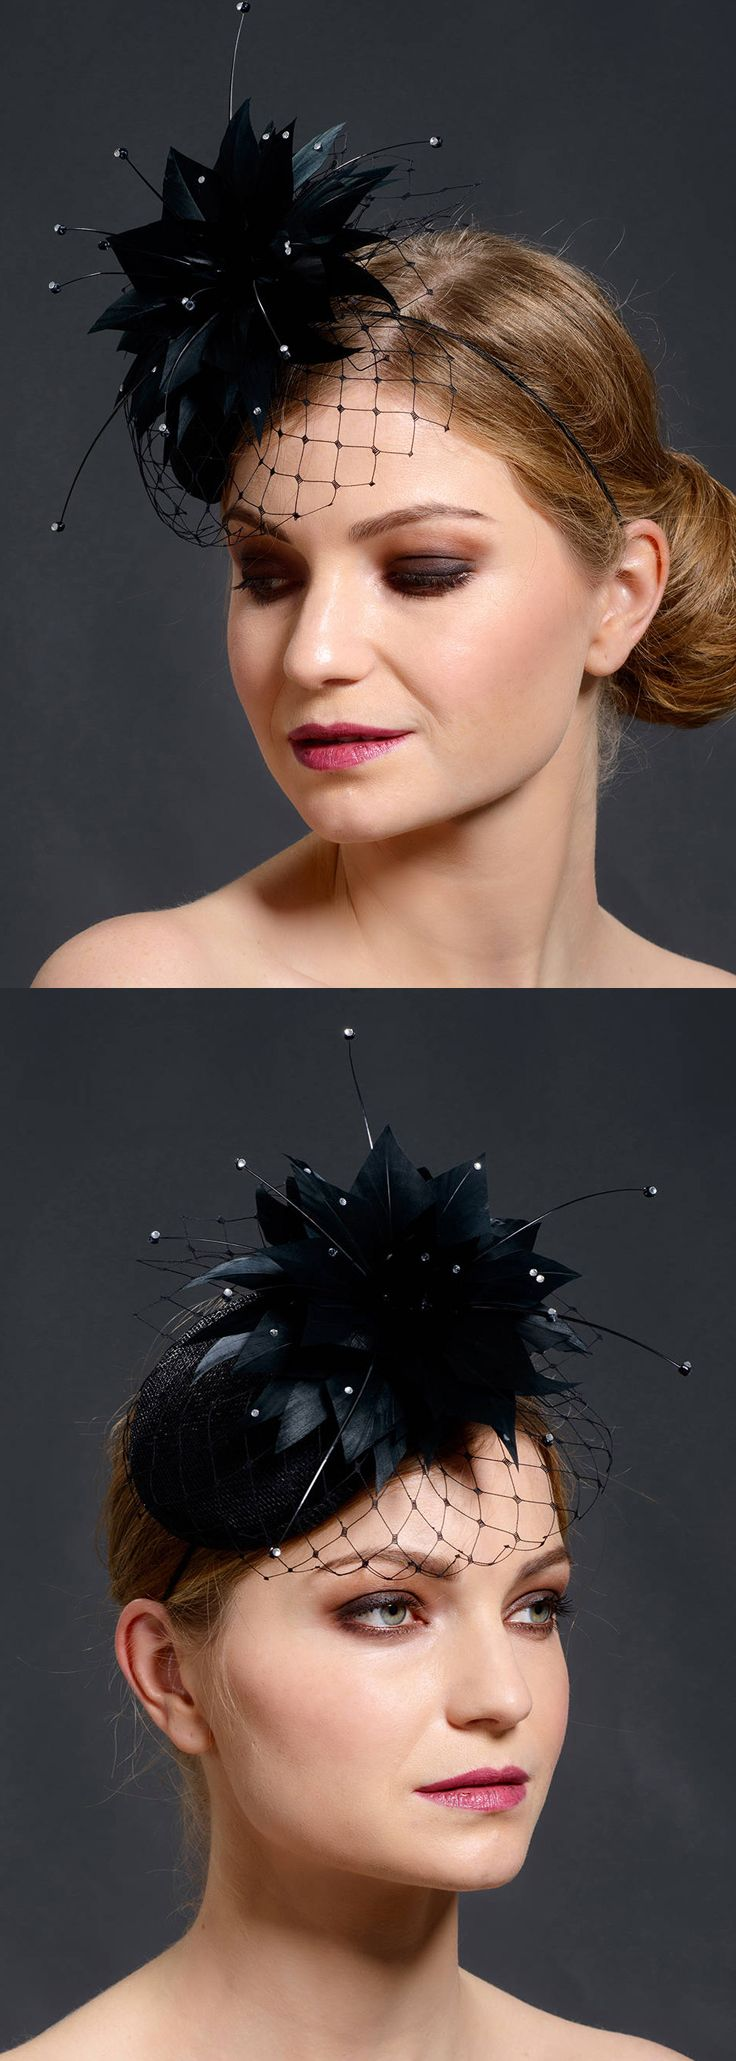 Black small pillbox hat with small face veil trimmed with stunning hand-made feather flower. Feather flower is decorated with silver colour rhinestones. Perfect for Winter Christmas Wedding guest idea. #bride #winterwedding #christmaswedding #newyearwedding #bridalaccessories #whattowear #weddingguest #cocktailhats #millinery #affiliatelike #fascinators #blackhats